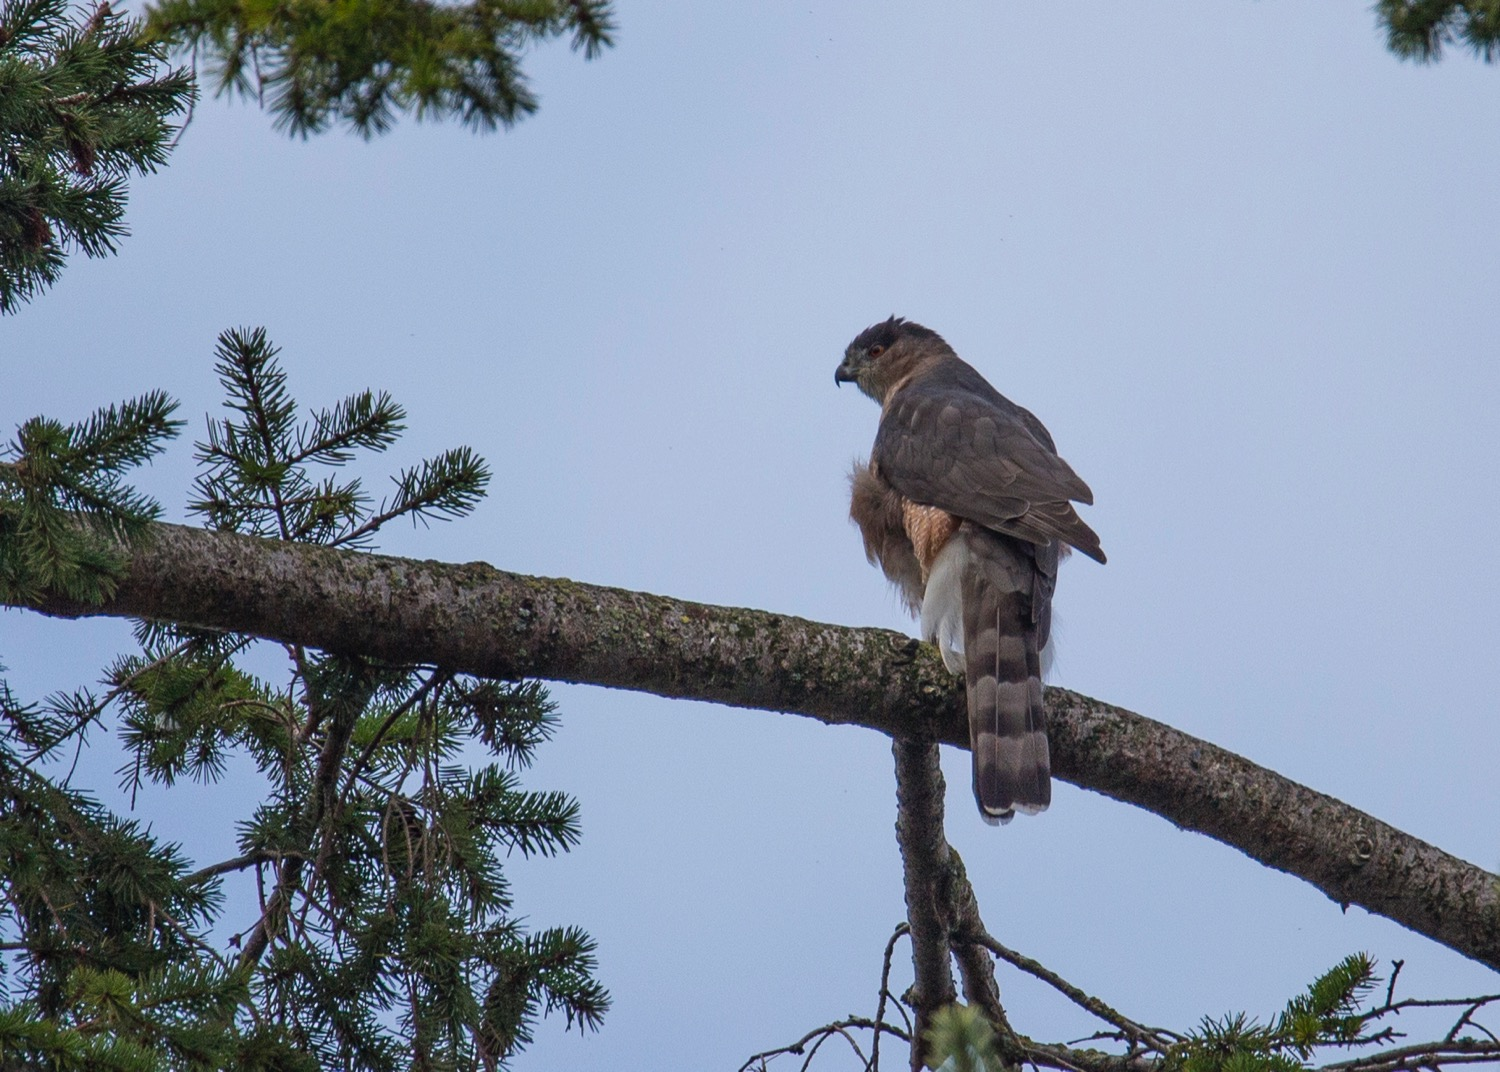 I think this is a Cooper's Hawk